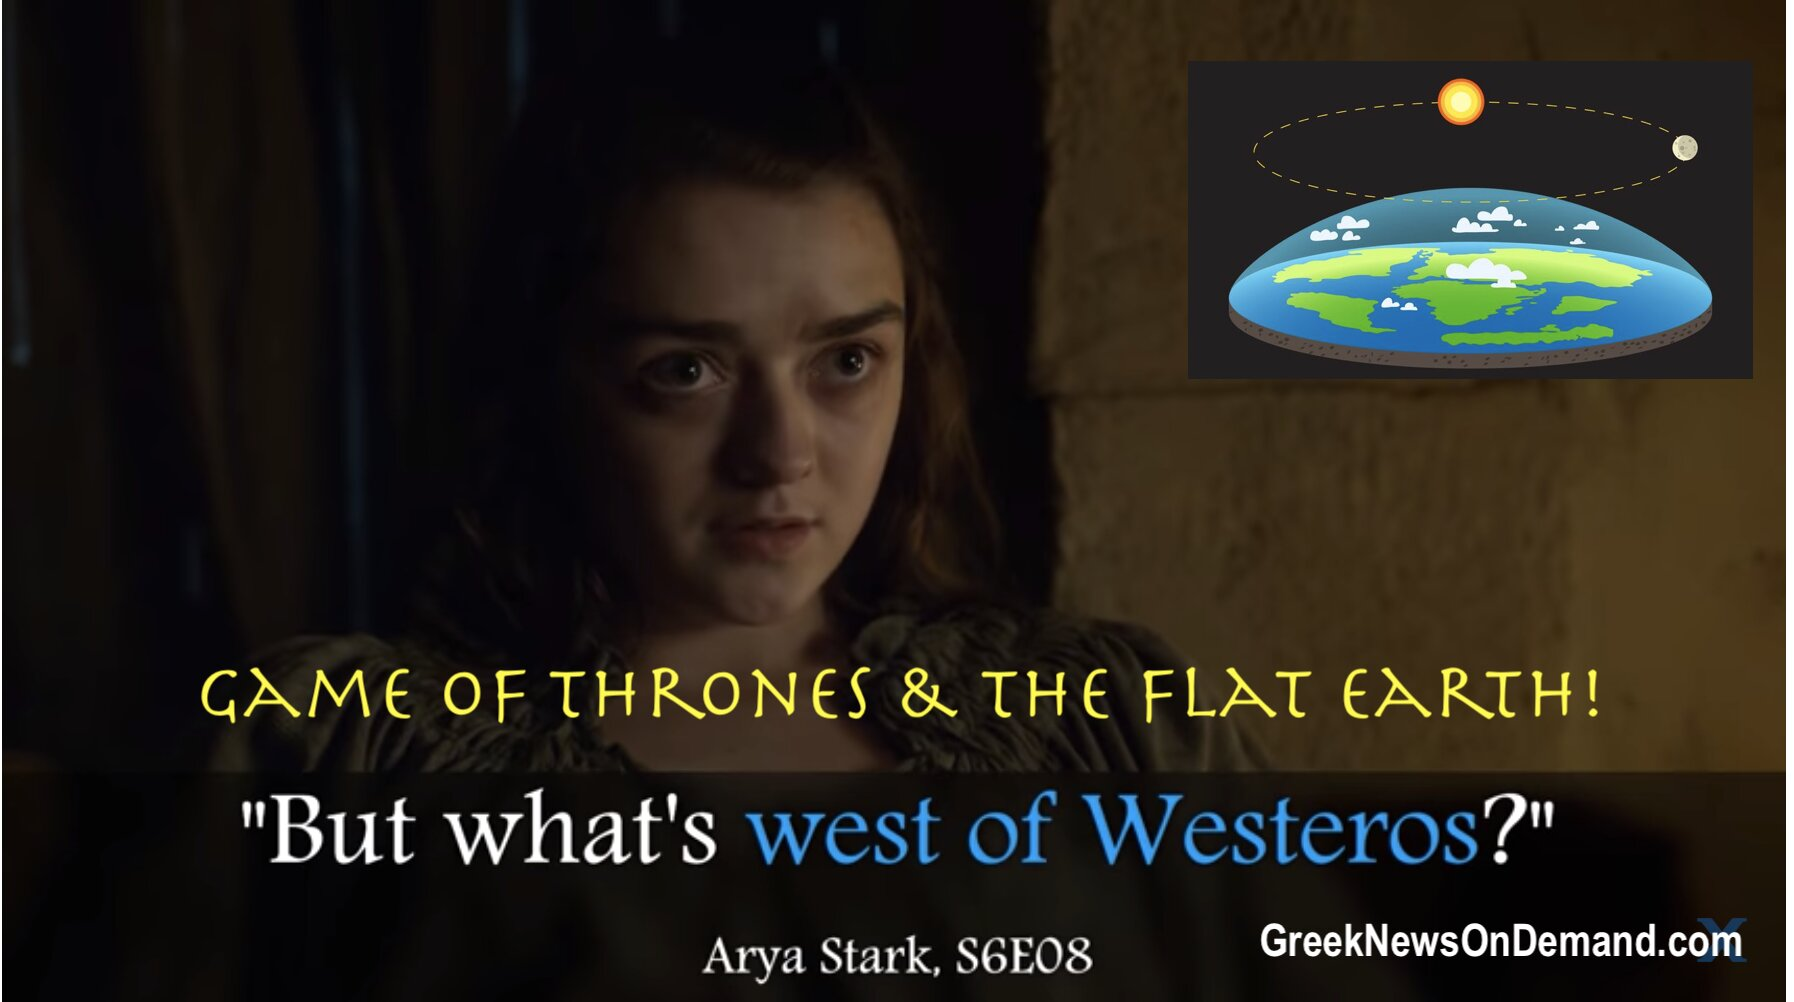 Arya on Game of Thrones wants to go West of Westeros to see the…EDGE OF WORLD! #FlatEarth